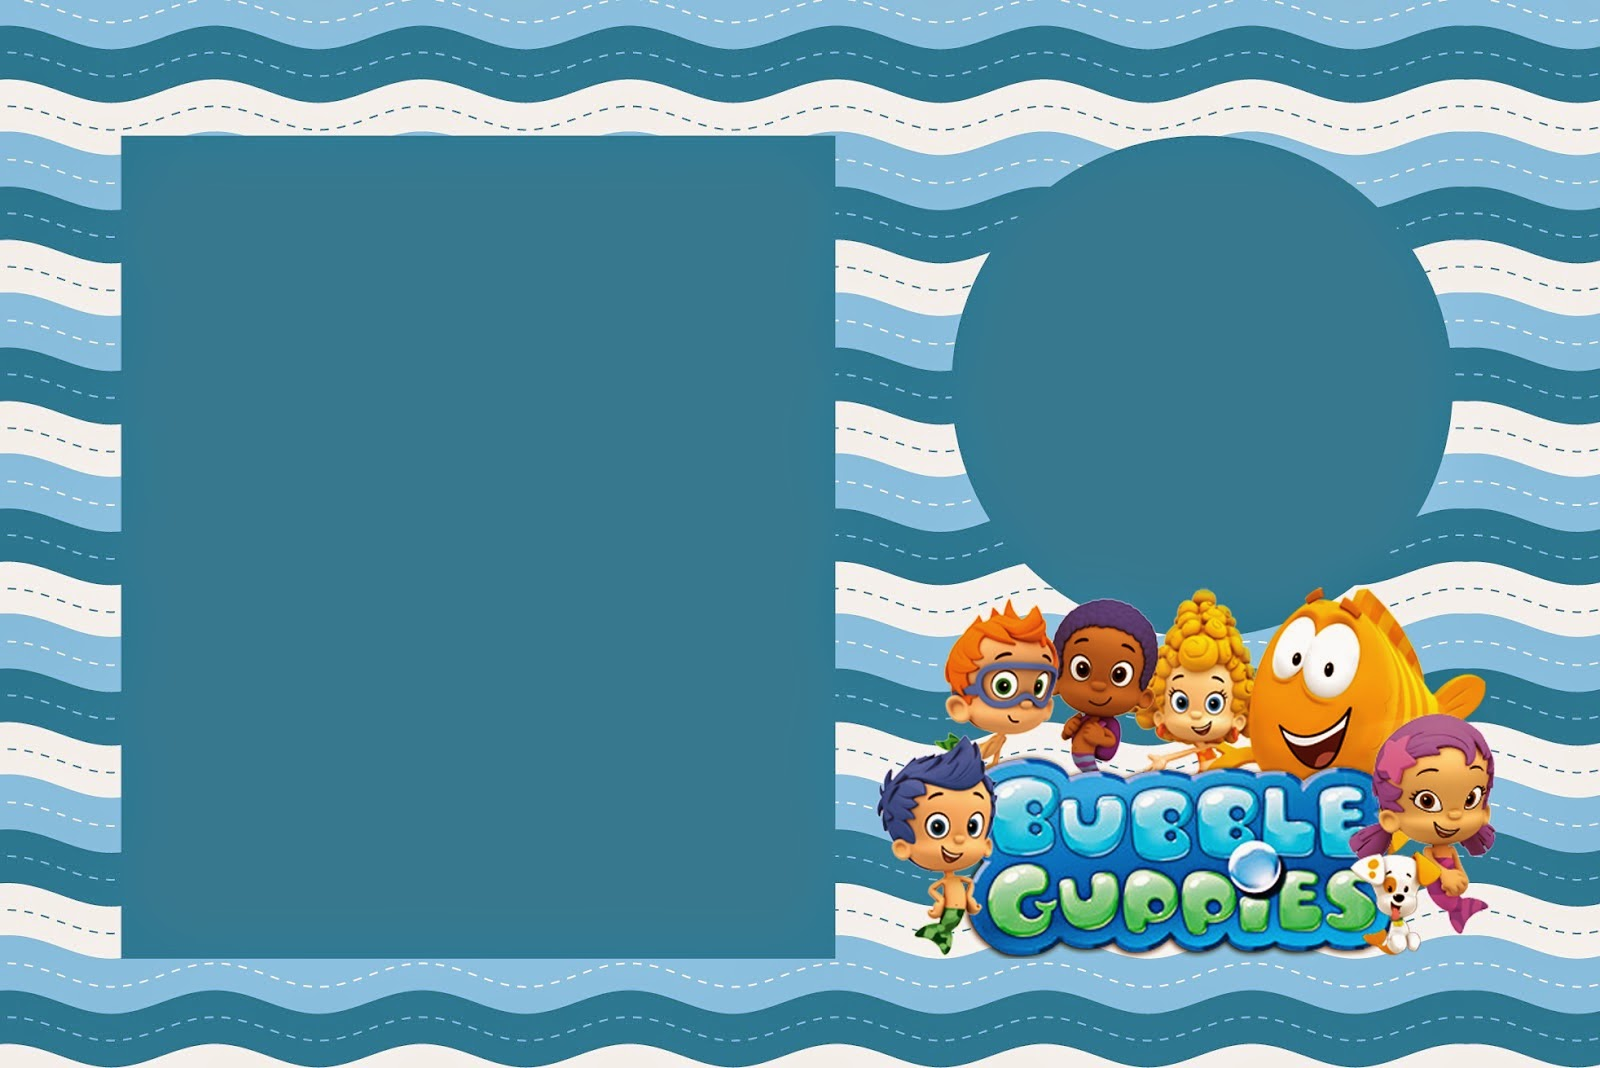 Bubble Guppies Birthday Invitations Template for great invitation ideas